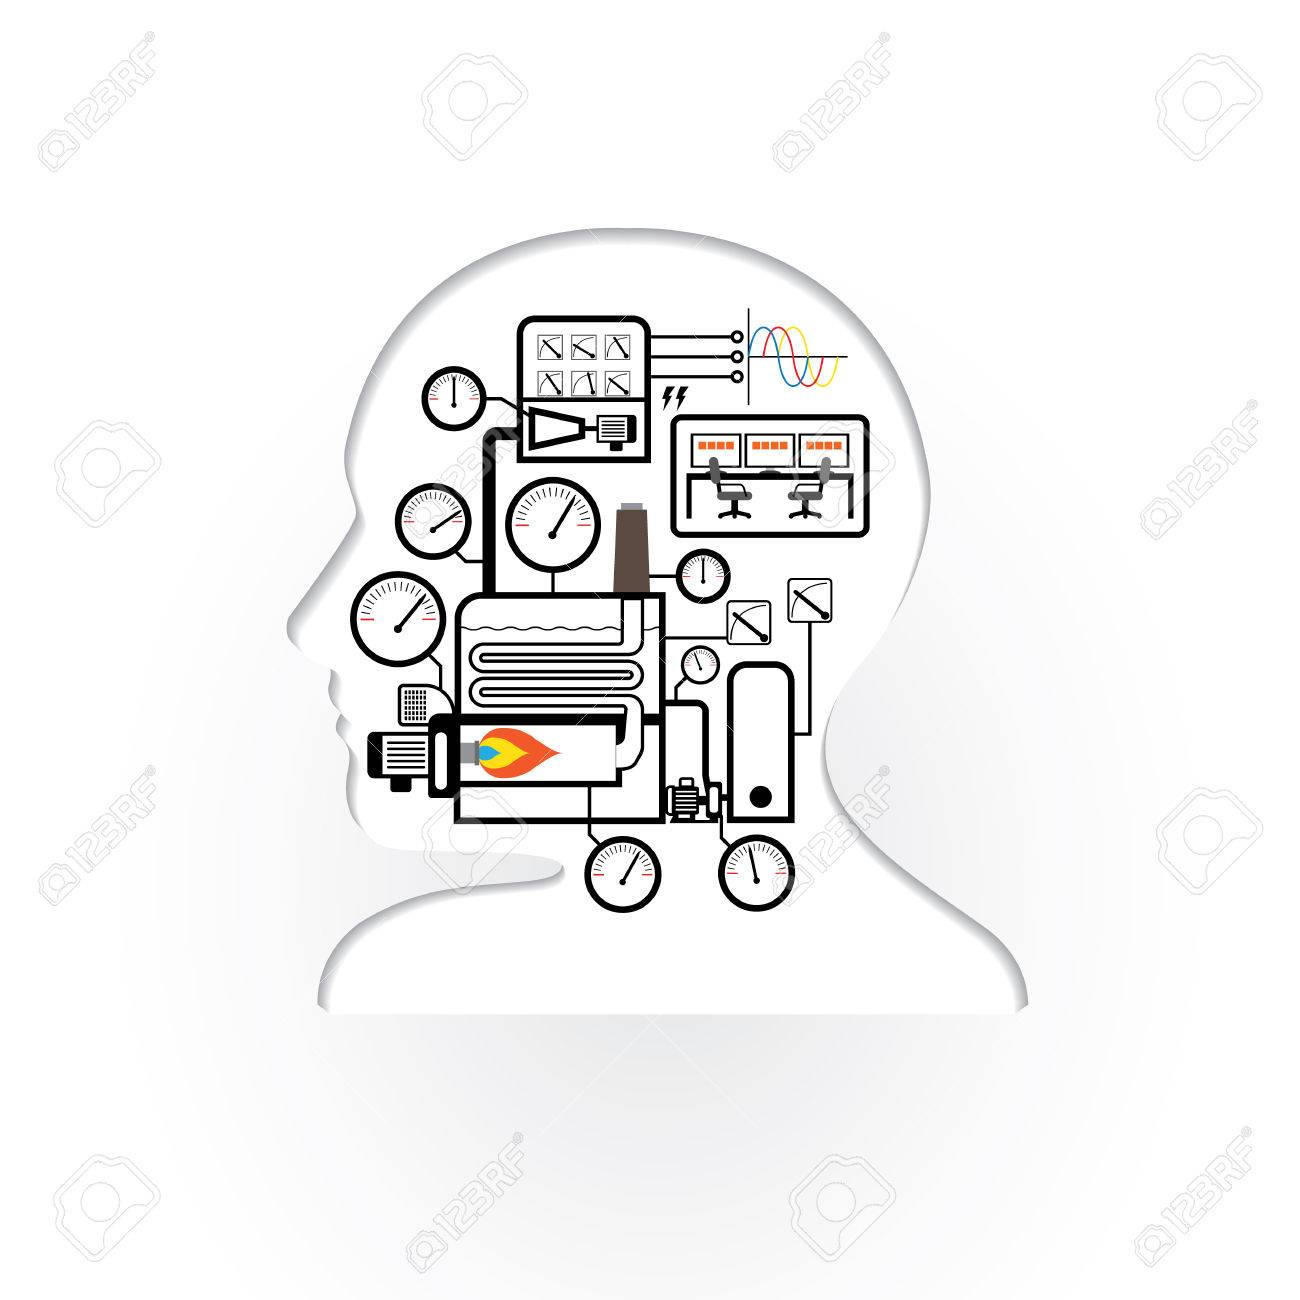 Abstract Brain Human With Simple Boiler System Royalty Free Cliparts ...